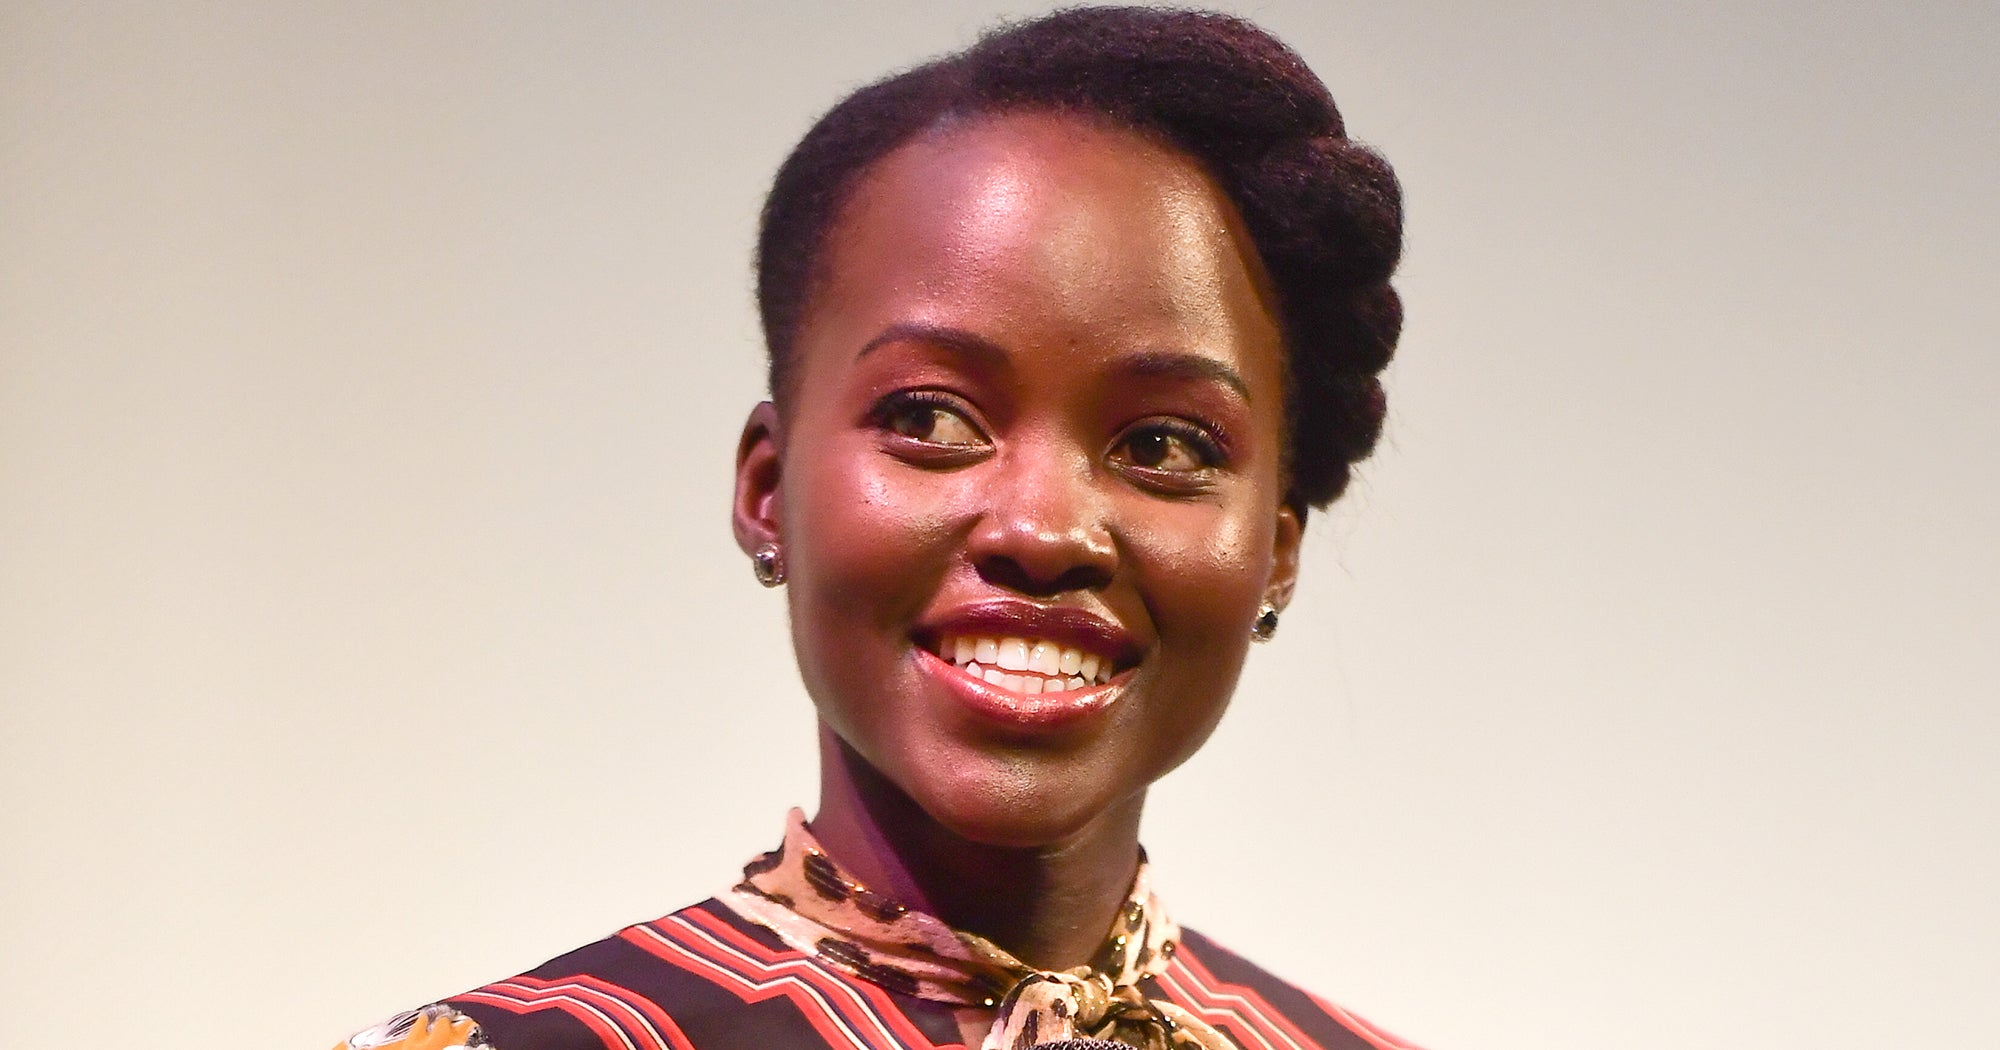 Americanah Is Finally Getting The Adaptation It Deserves With Lupita Nyong'o